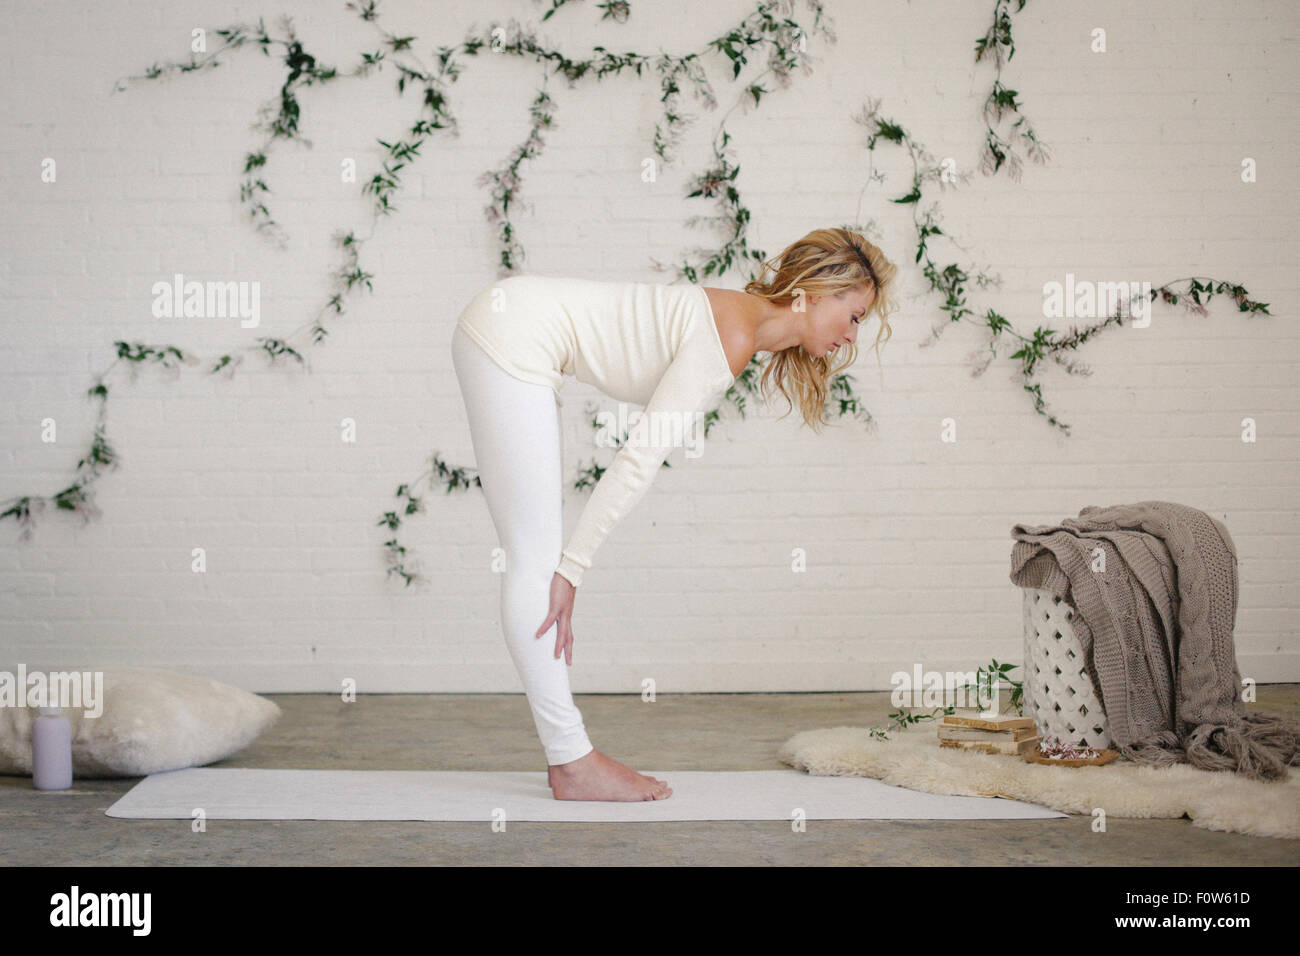 A blonde woman in a white leotard and leggings, standing on a white mat in a room,  bending forwards. - Stock Image